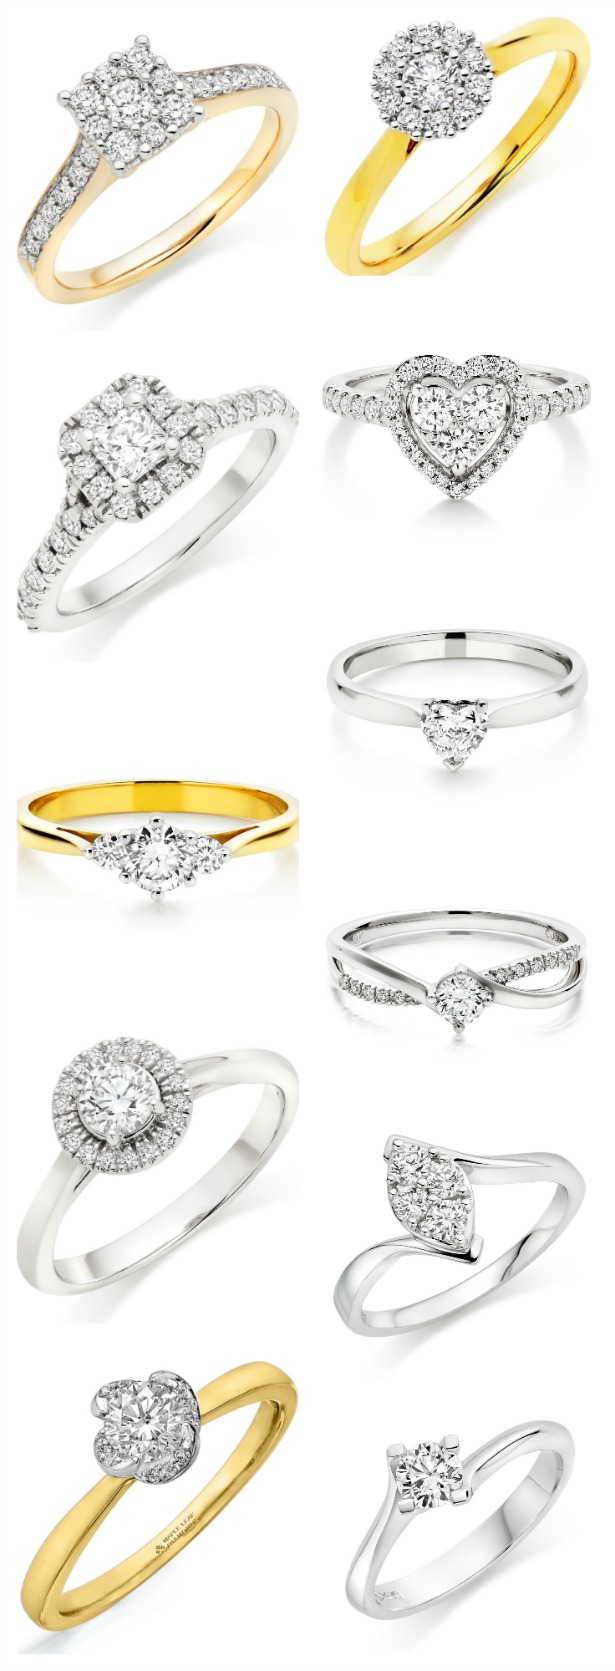 Engagement rings by Beaverbooks and Fraser Hart   Confetti.co.uk